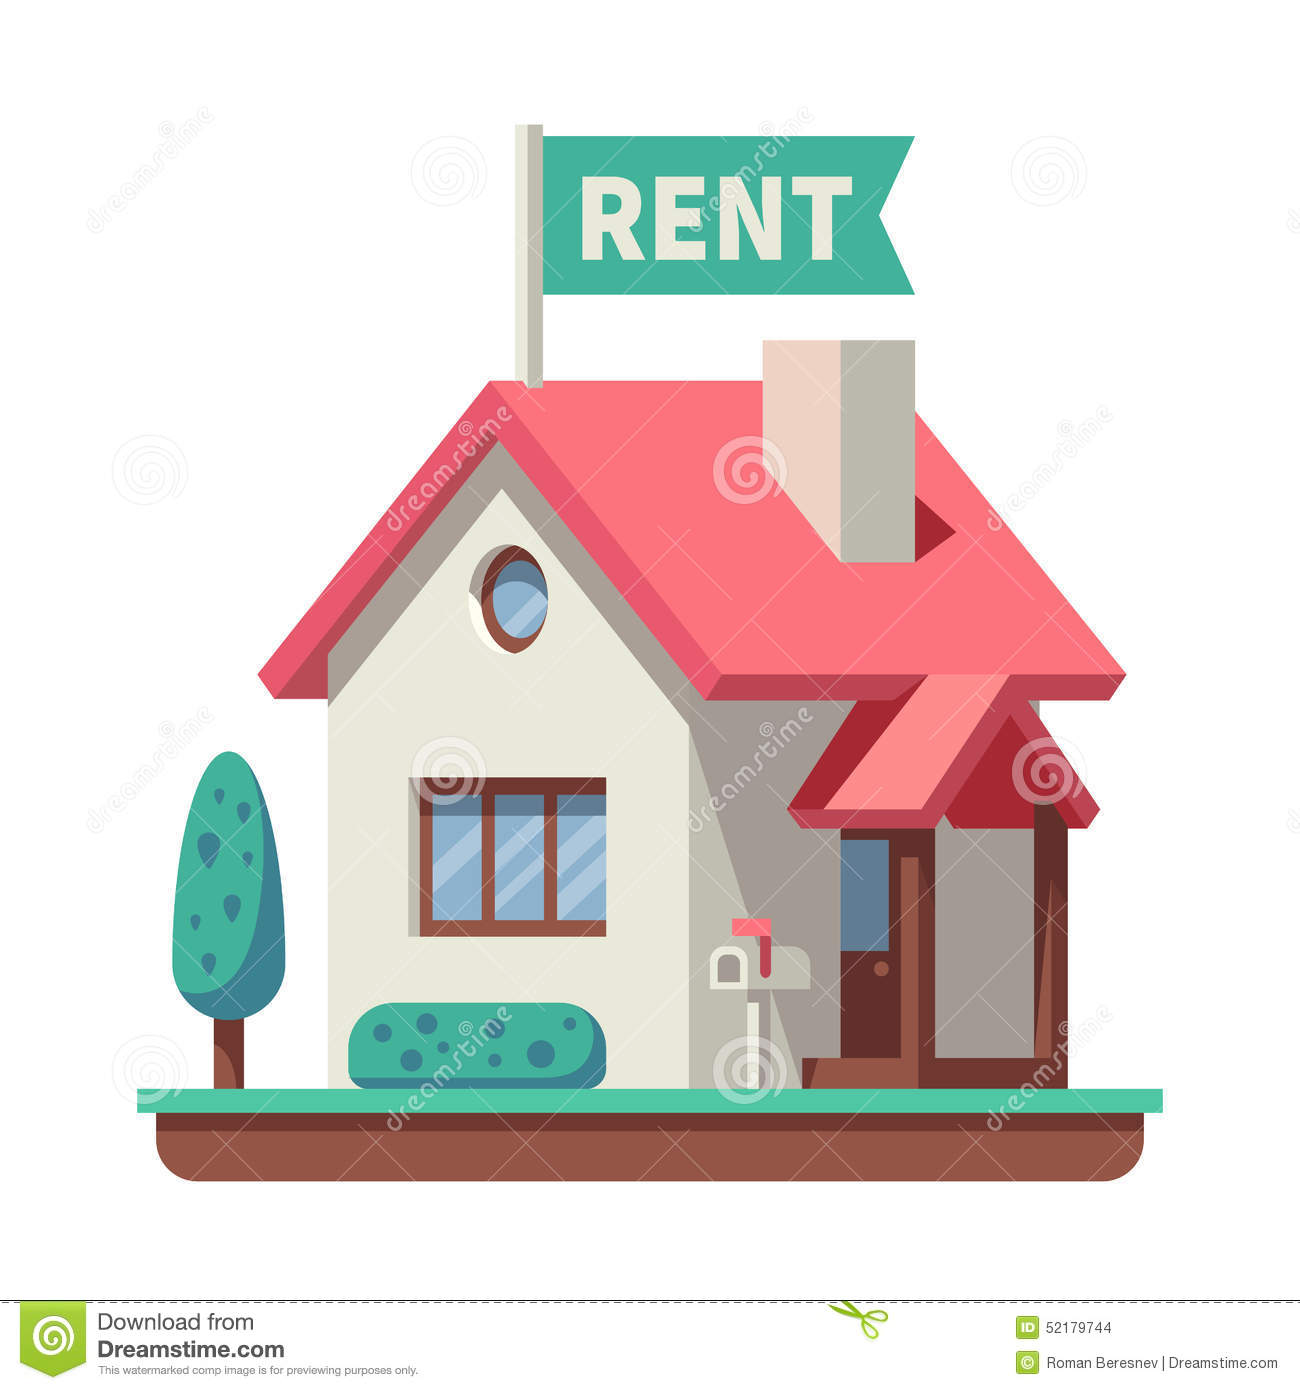 House Rent Com: House For Rent Stock Vector. Illustration Of Graphic